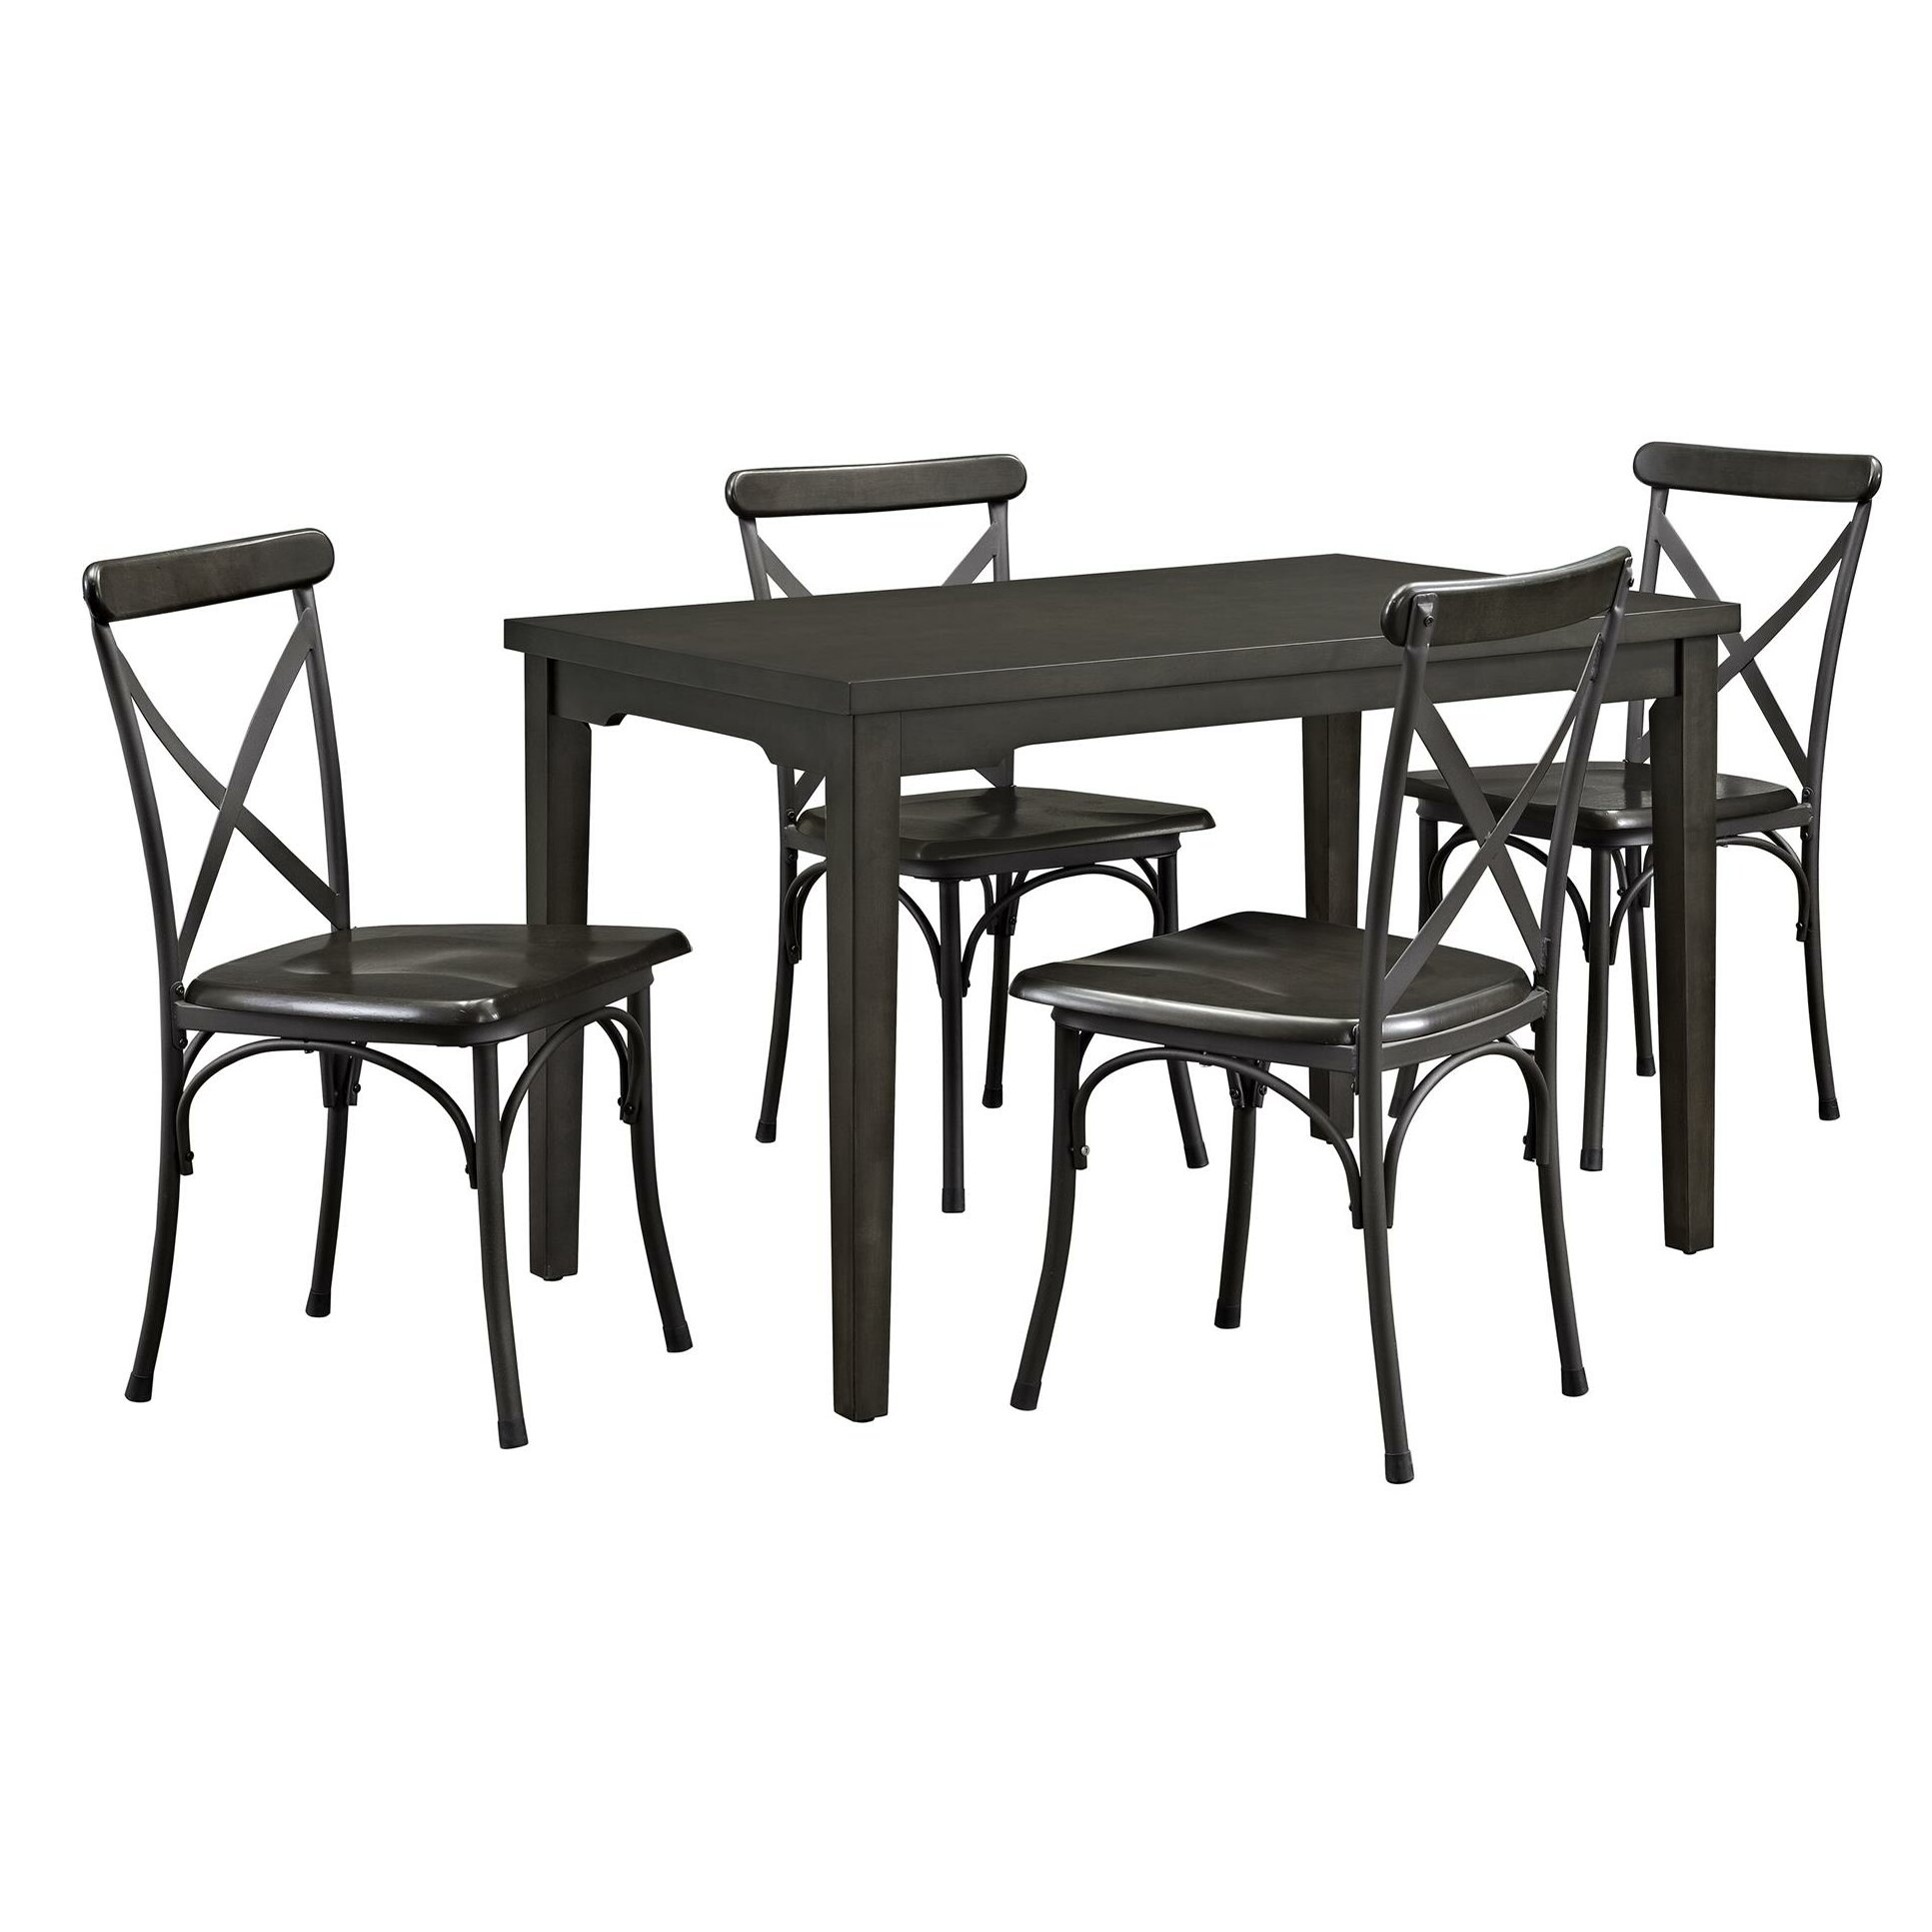 Dorel living parker 5 piece dining set reviews wayfair for 5 piece dining set